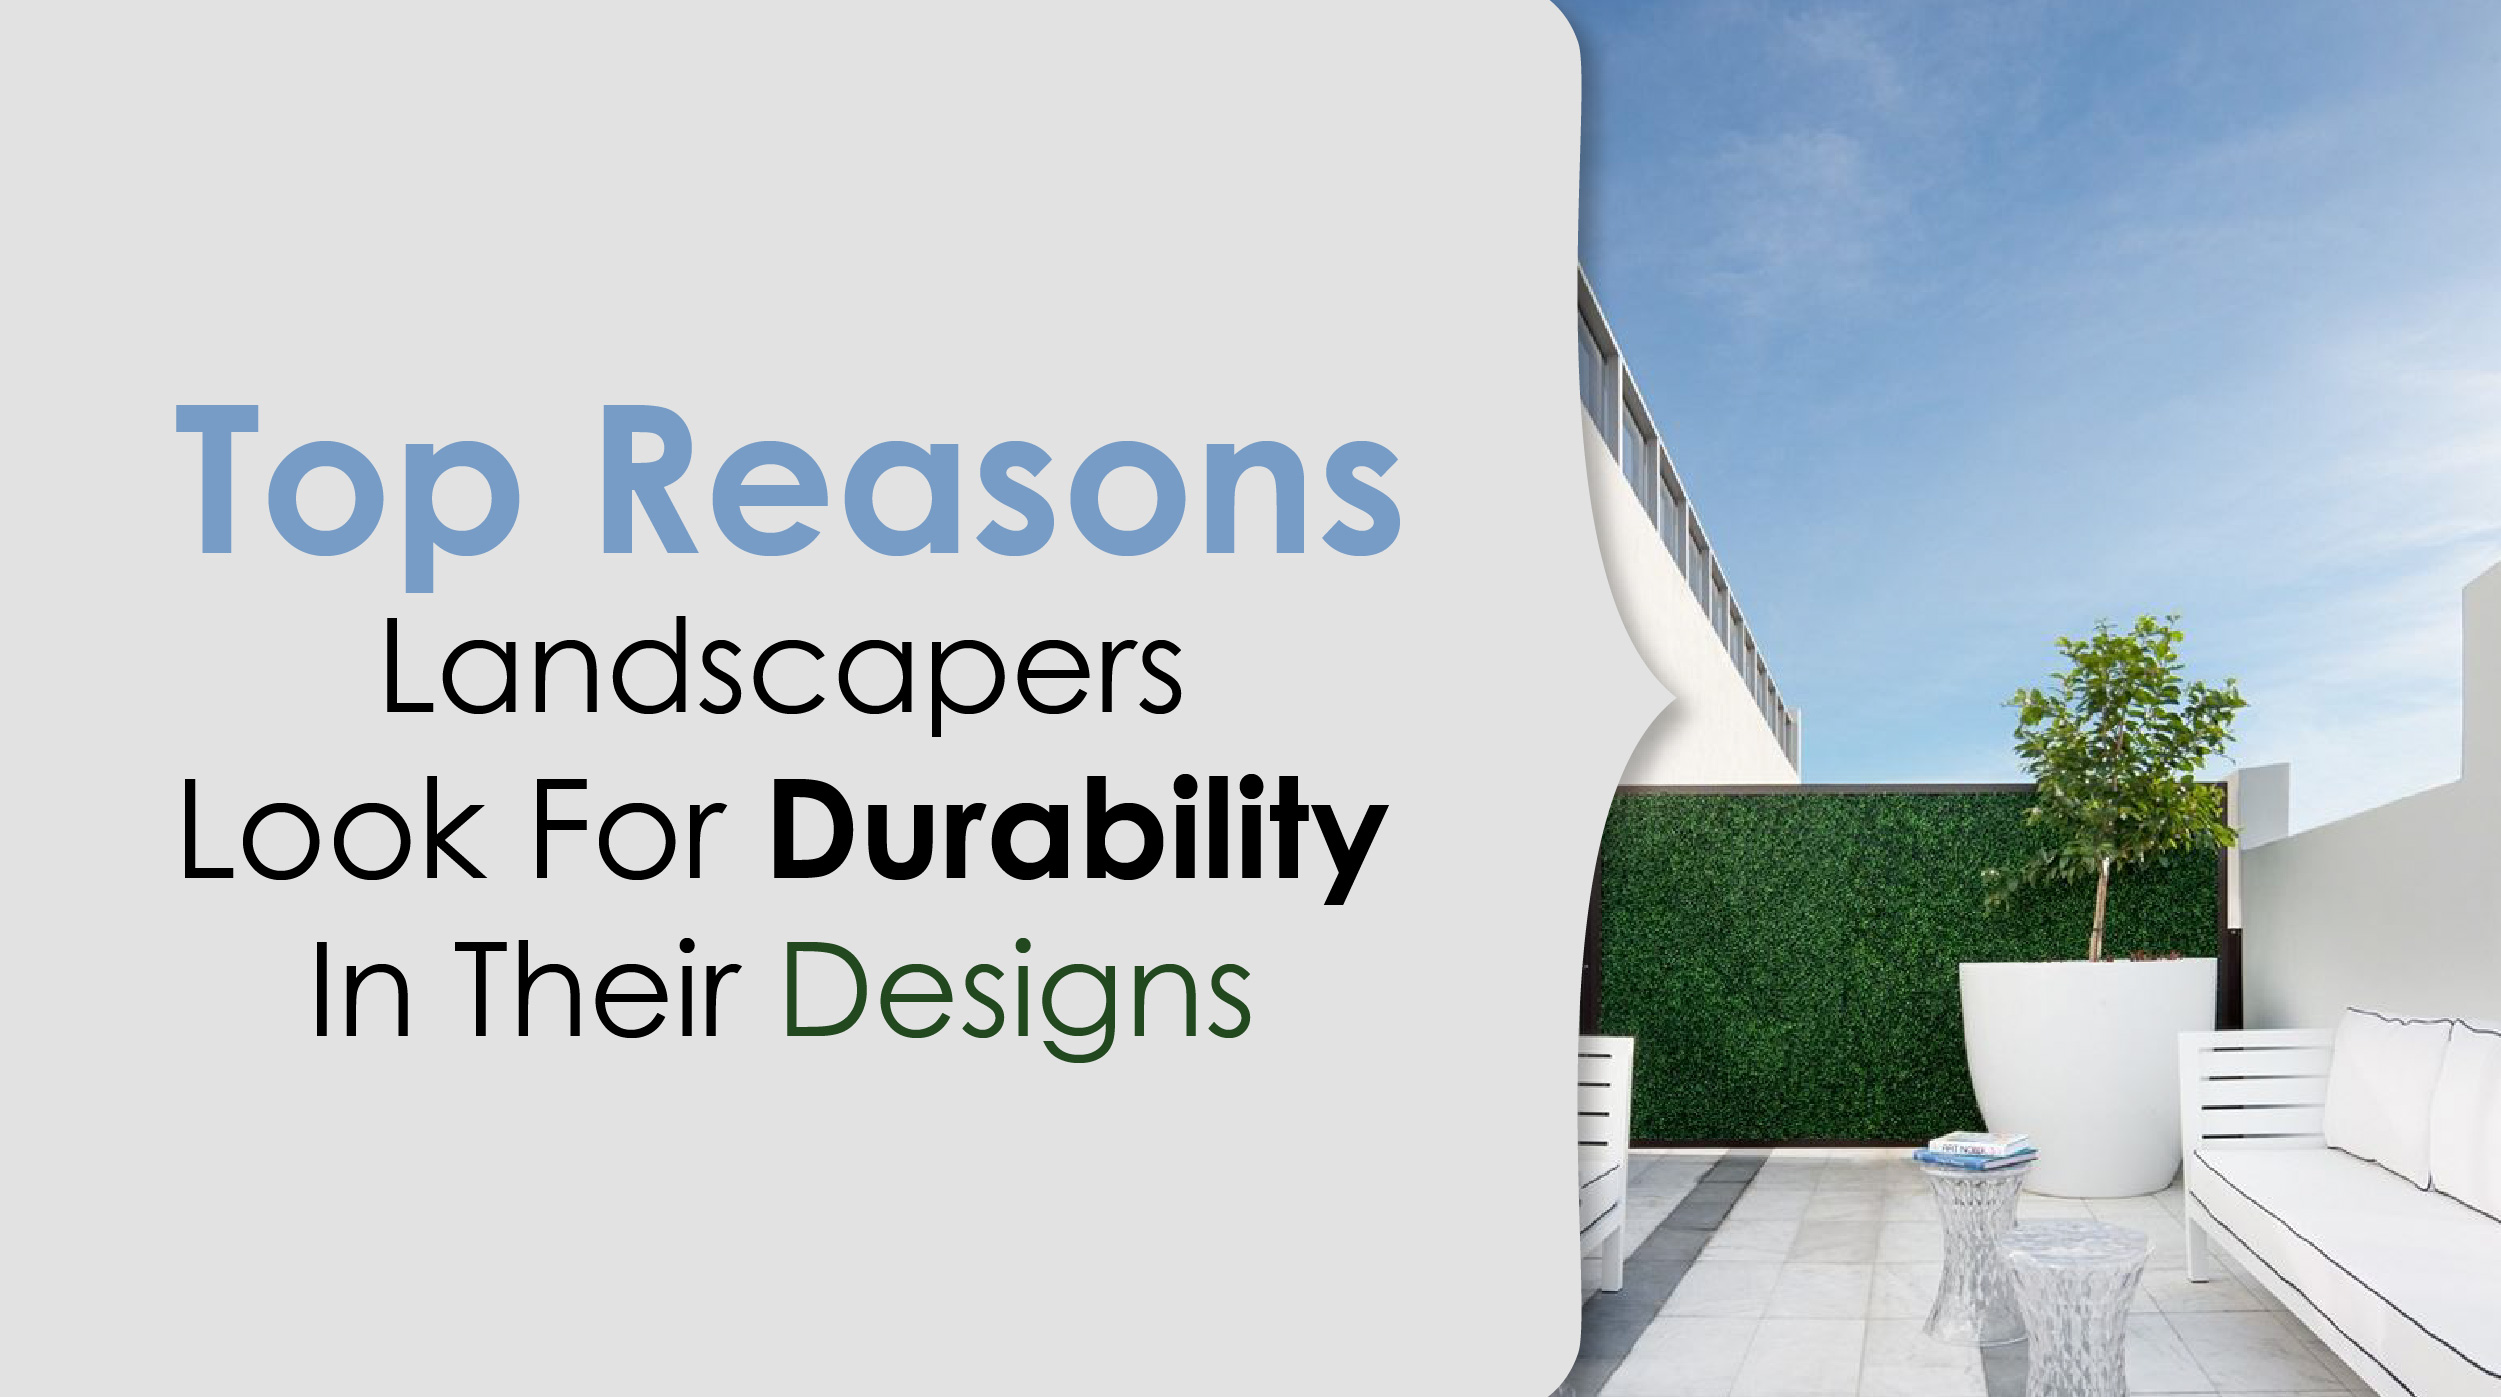 Landscapers Looks for Durability in Their Designs